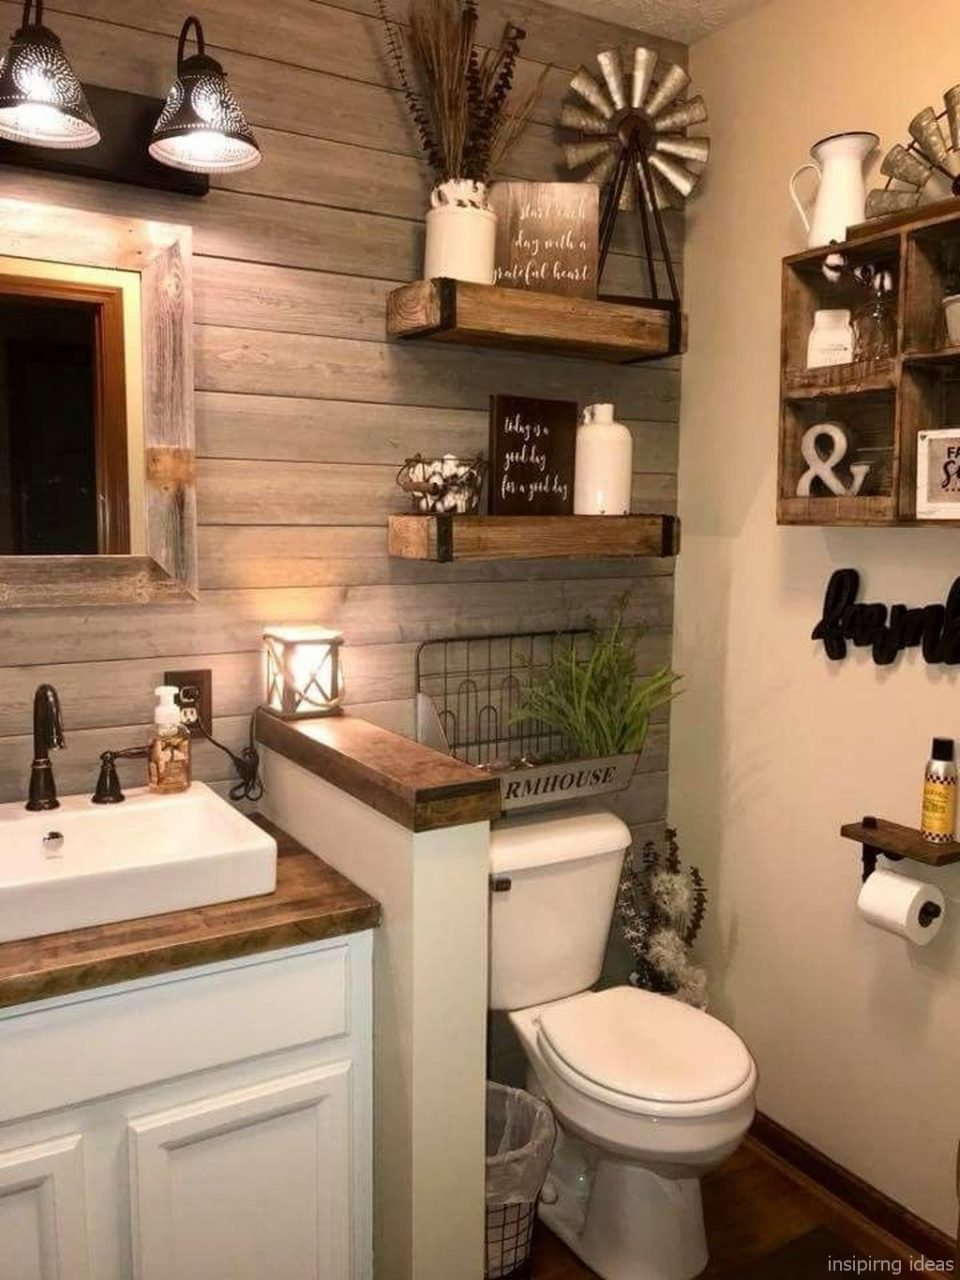 Rustic Country Home Decor Ideas 7 In 2019 House Ideas Bathroom